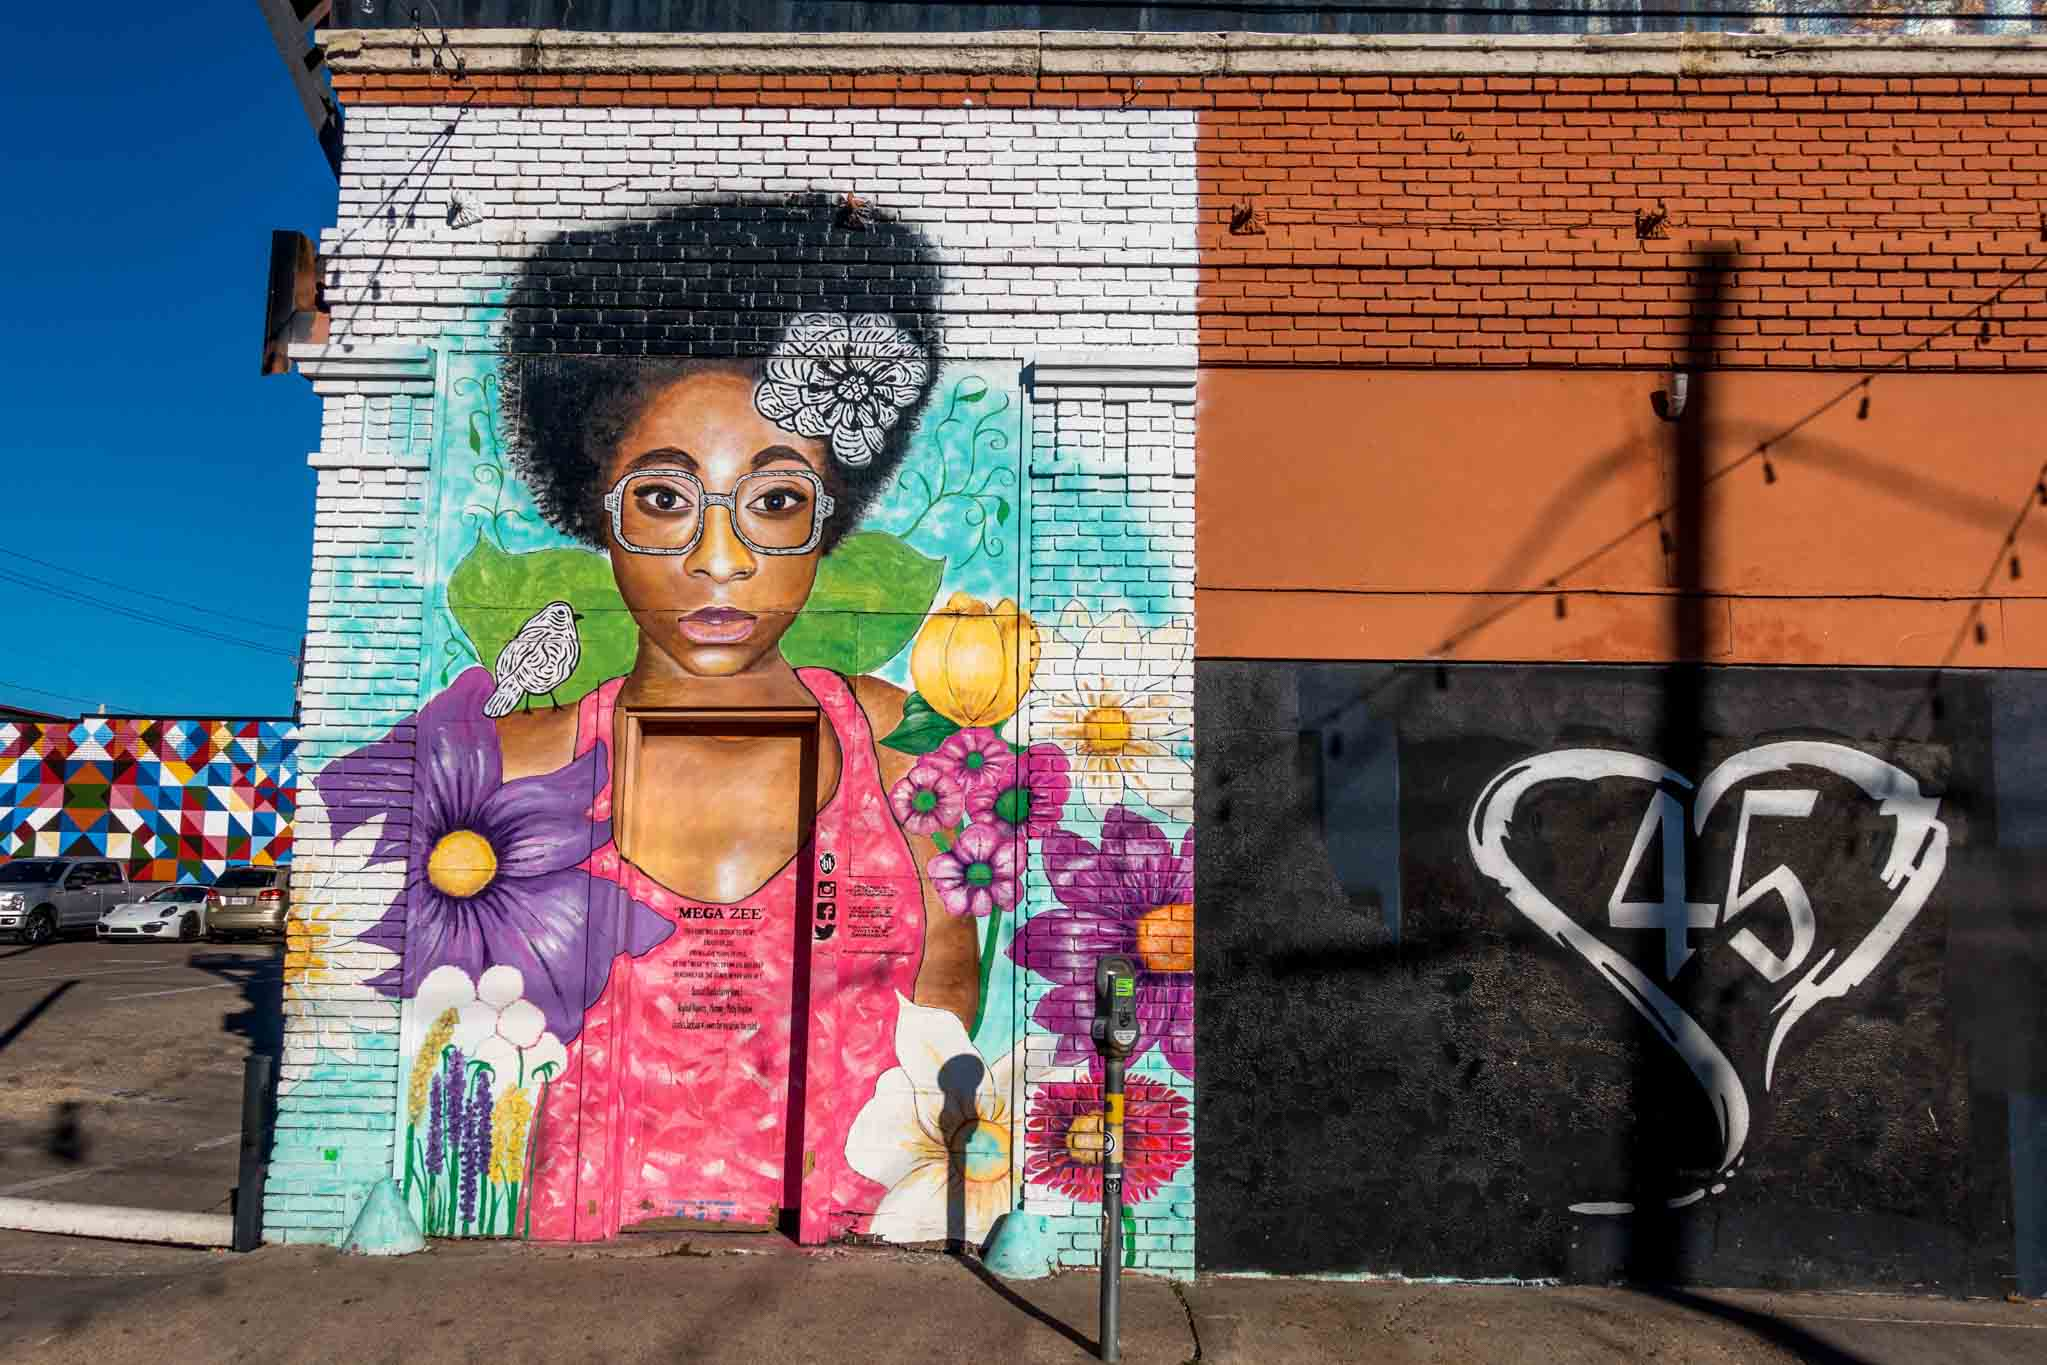 Mural of a woman and flowers in the Deep Ellum neighborhood of Dallas